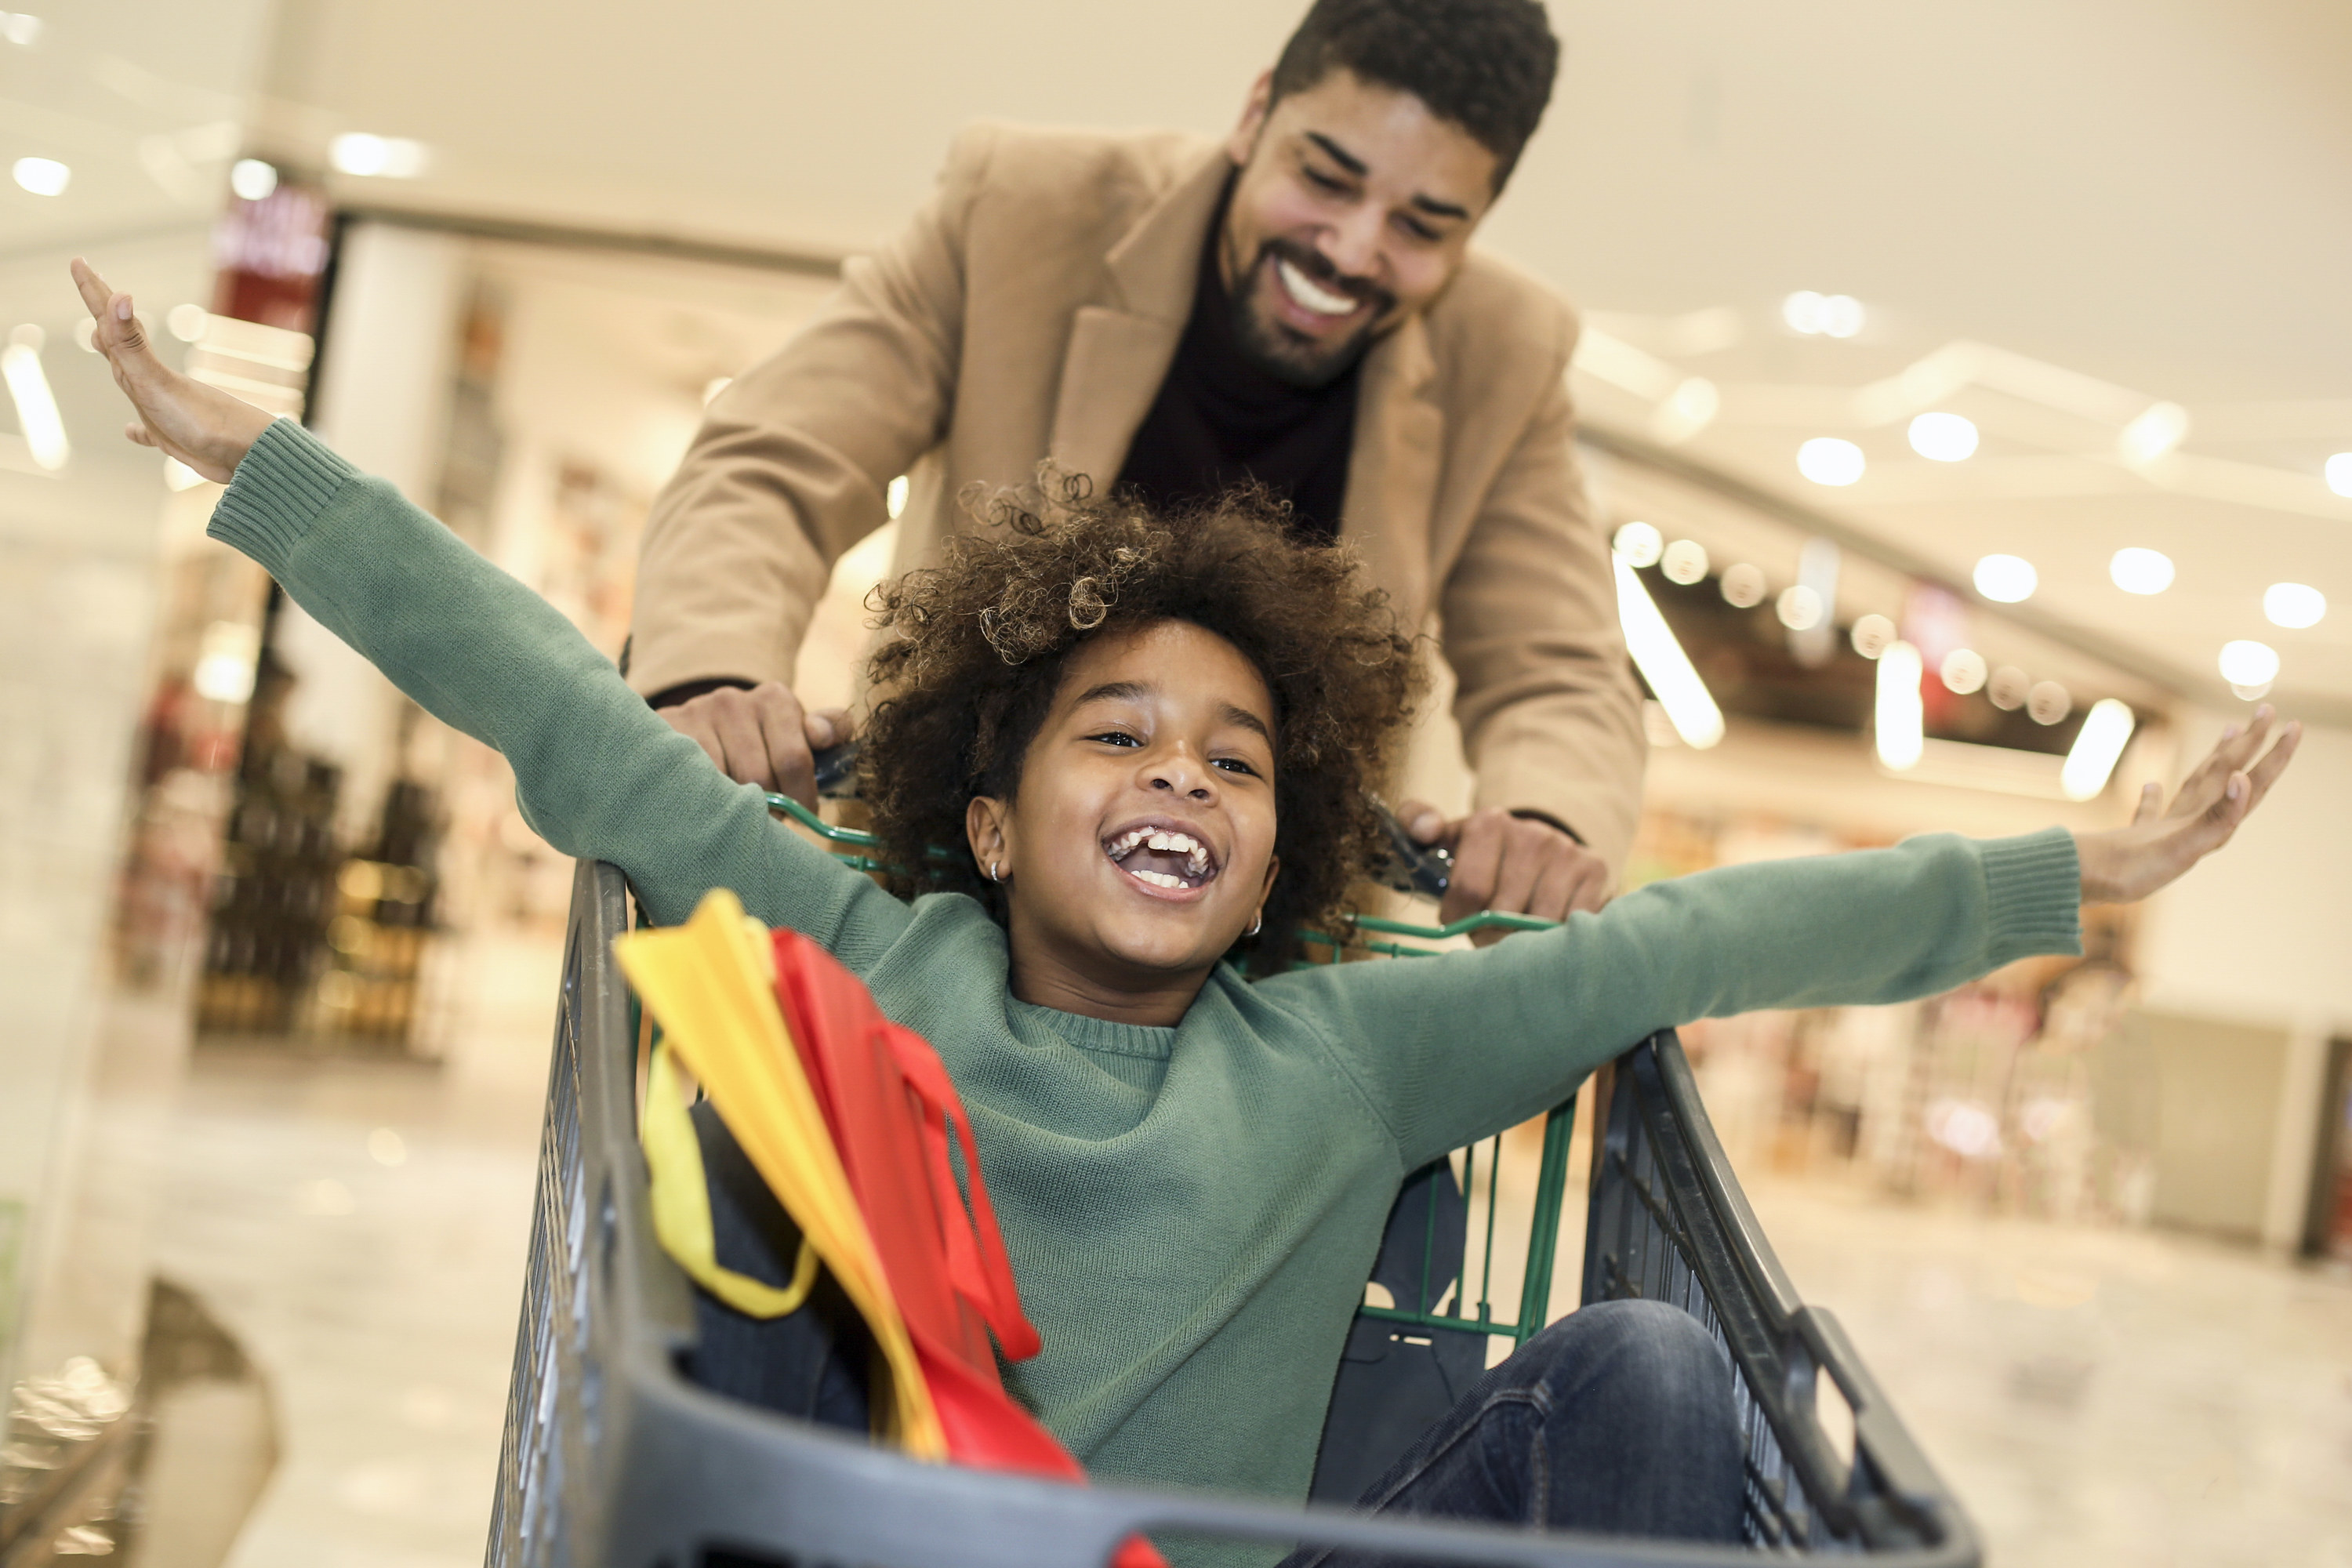 Young dad pushing a small child in a shopping cart